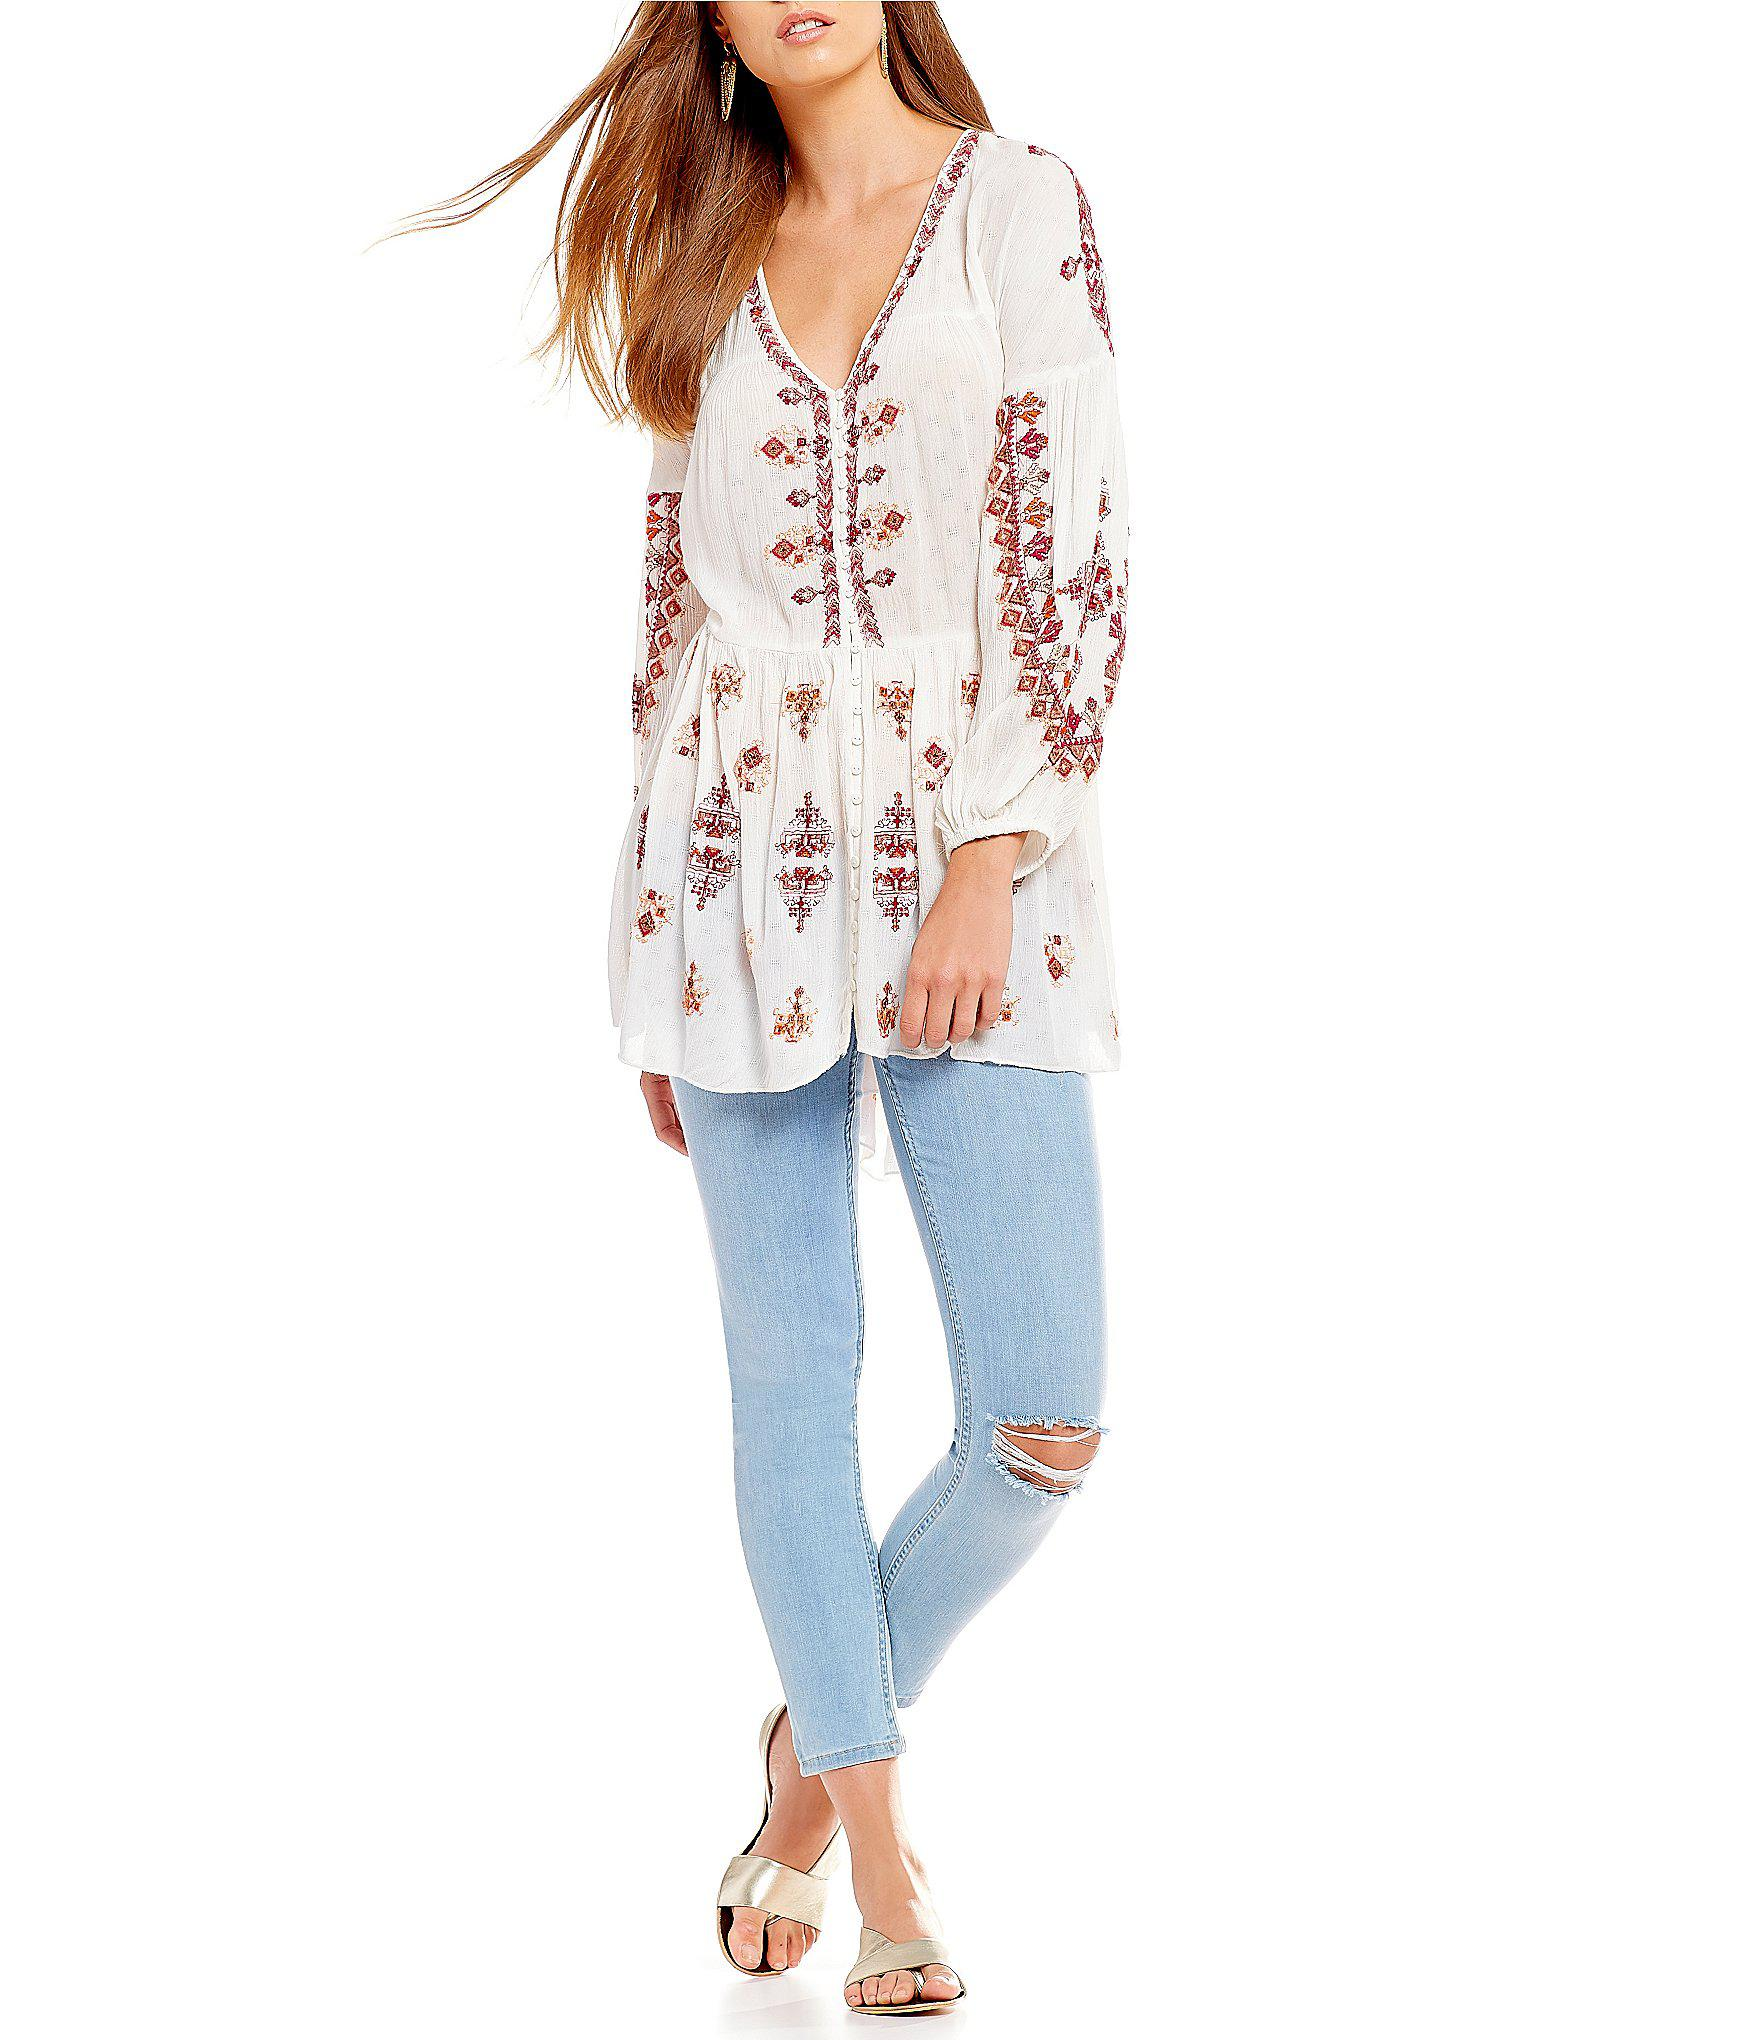 58a12e478b8 Free People Arianna Woven Embroidered Balloon Sleeve Tunic Top in ...